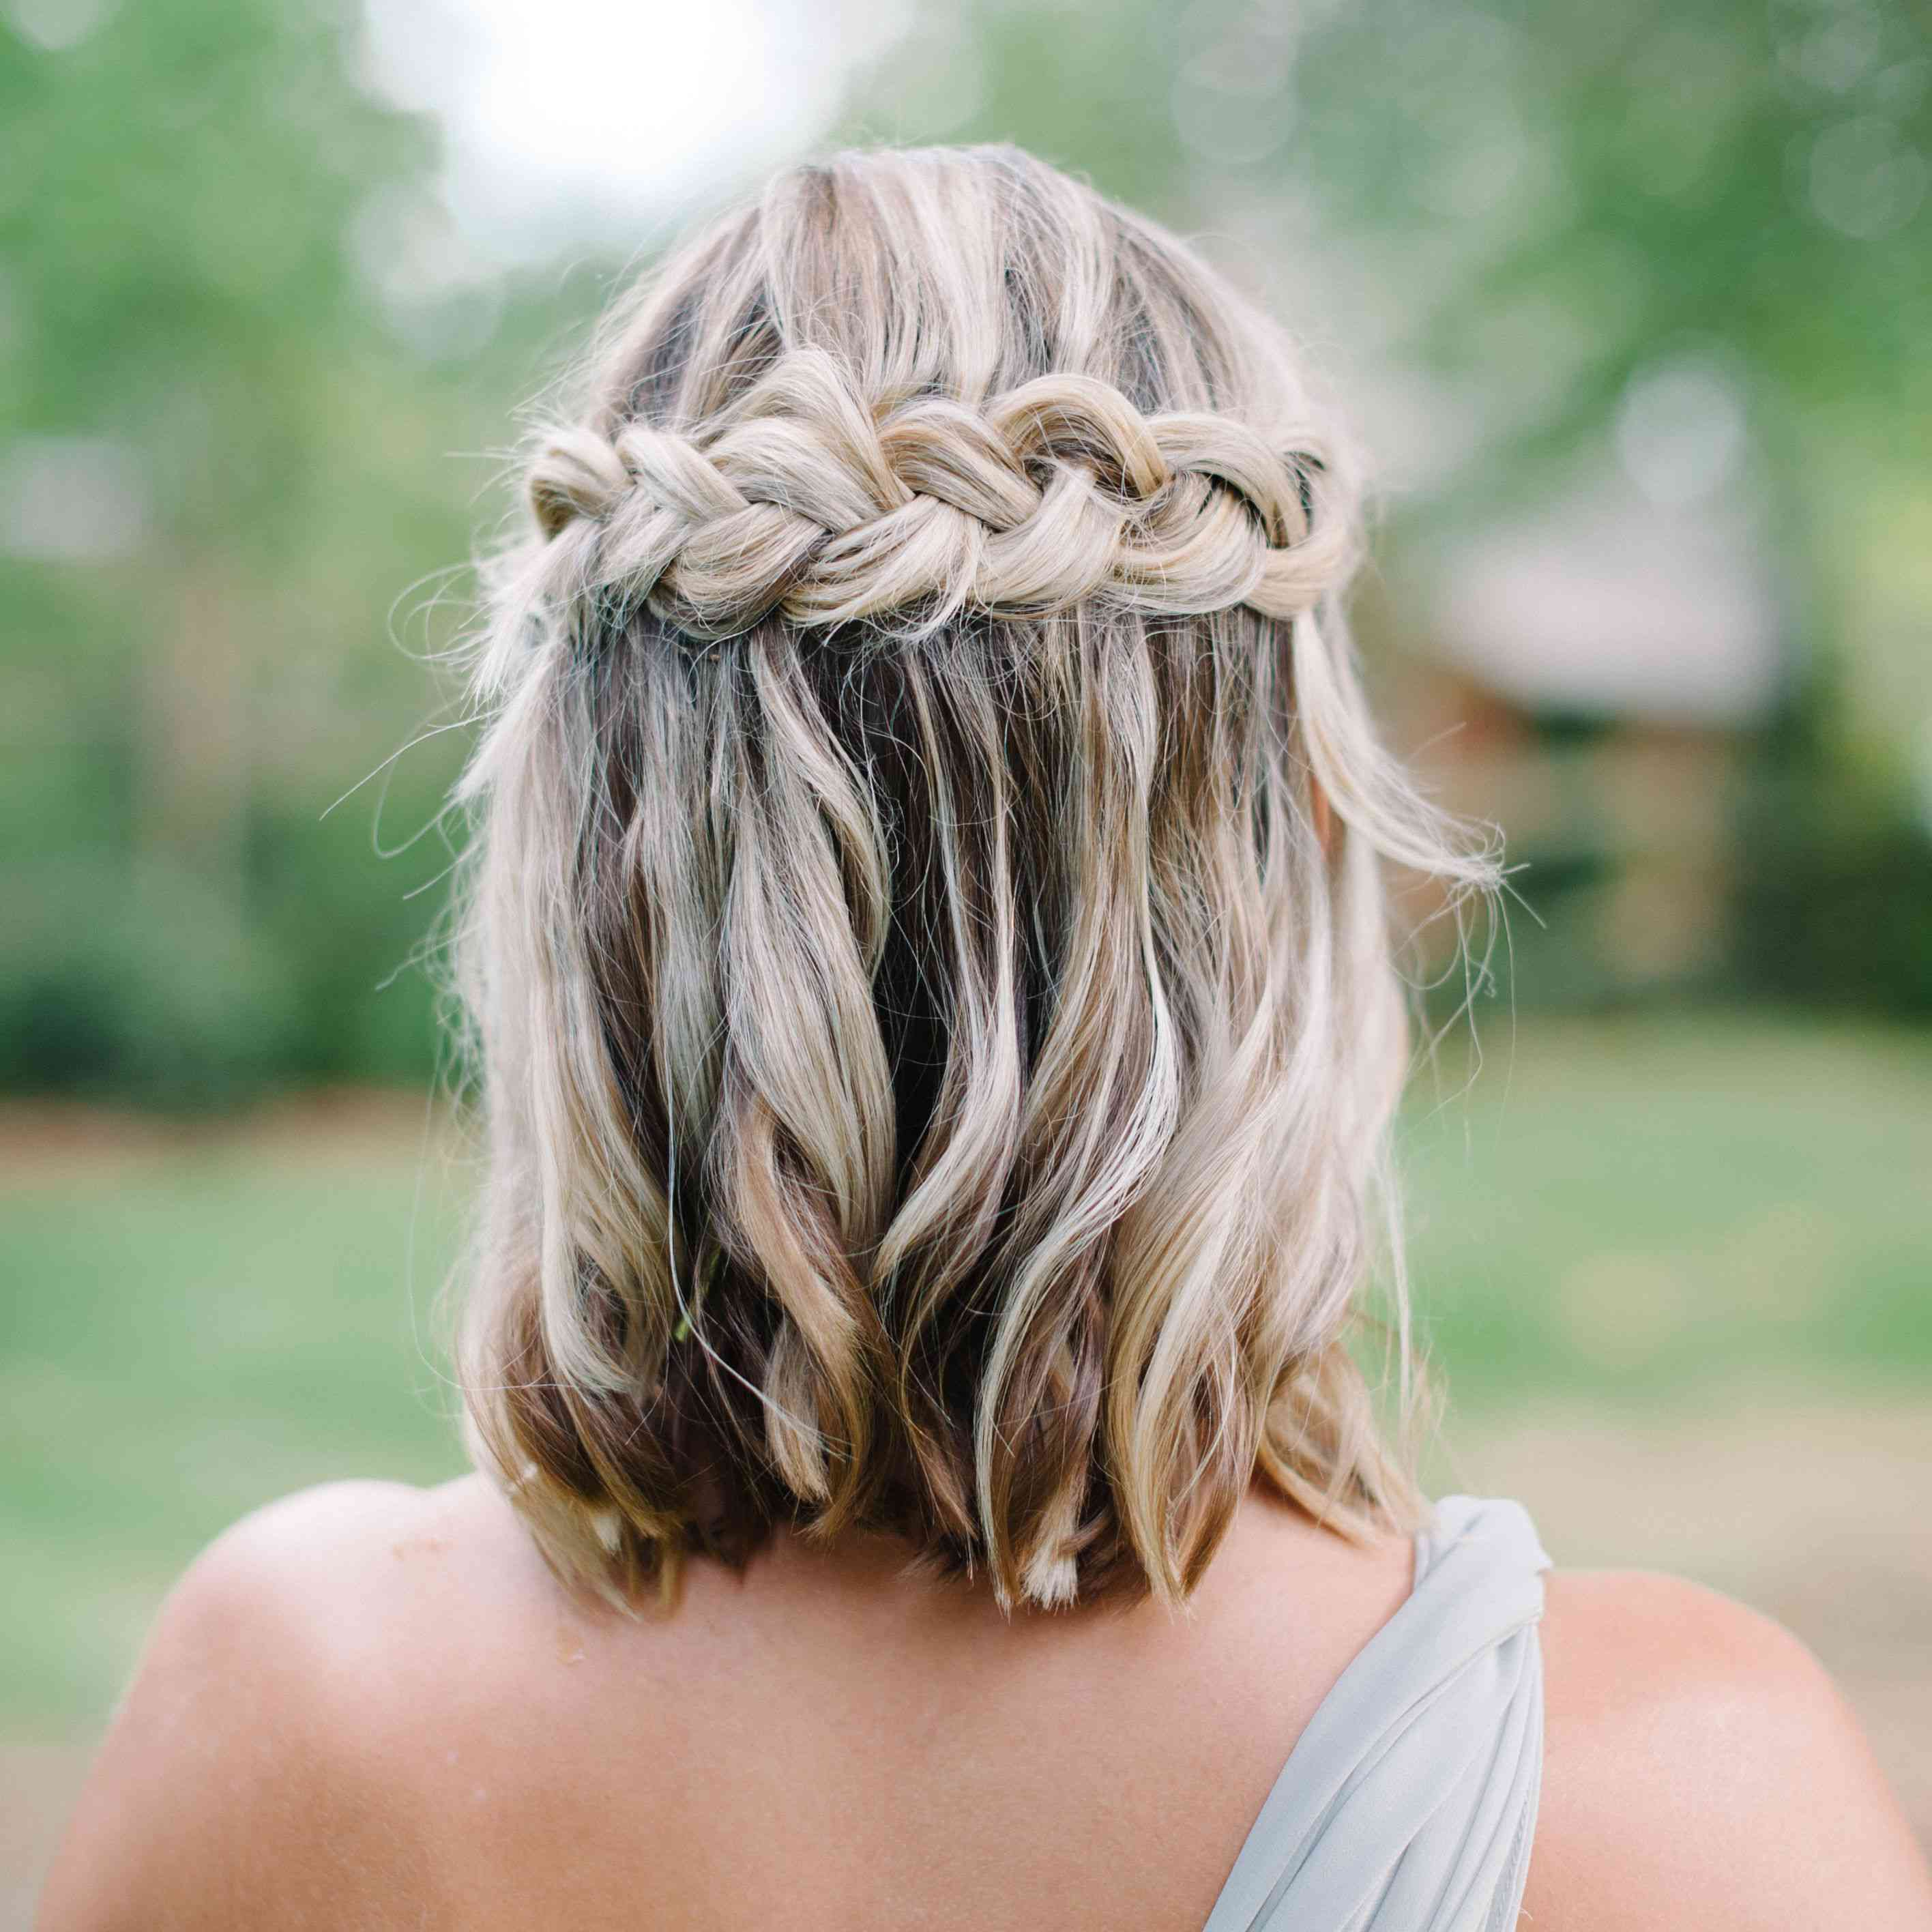 10 Stunning Wedding Hairstyle Ideas for Lobs